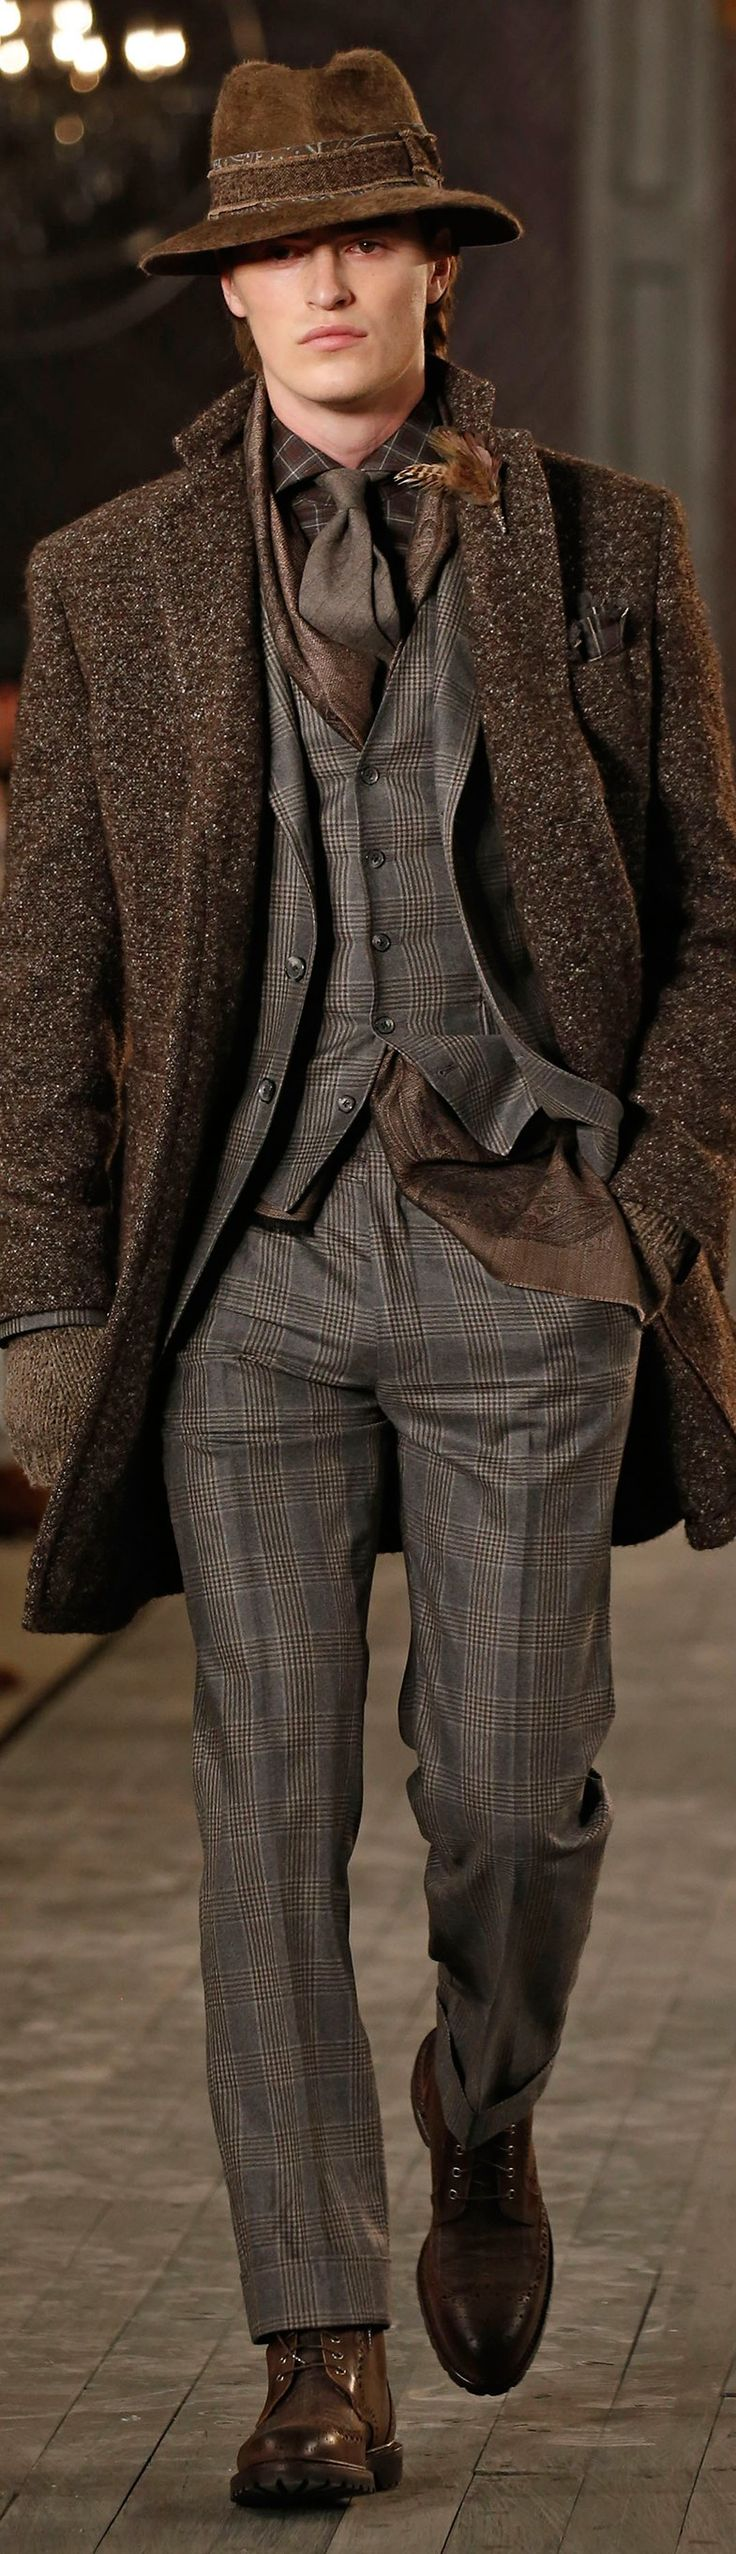 Joseph Abboud - Fall 2016                                                                                                                                                                                 More